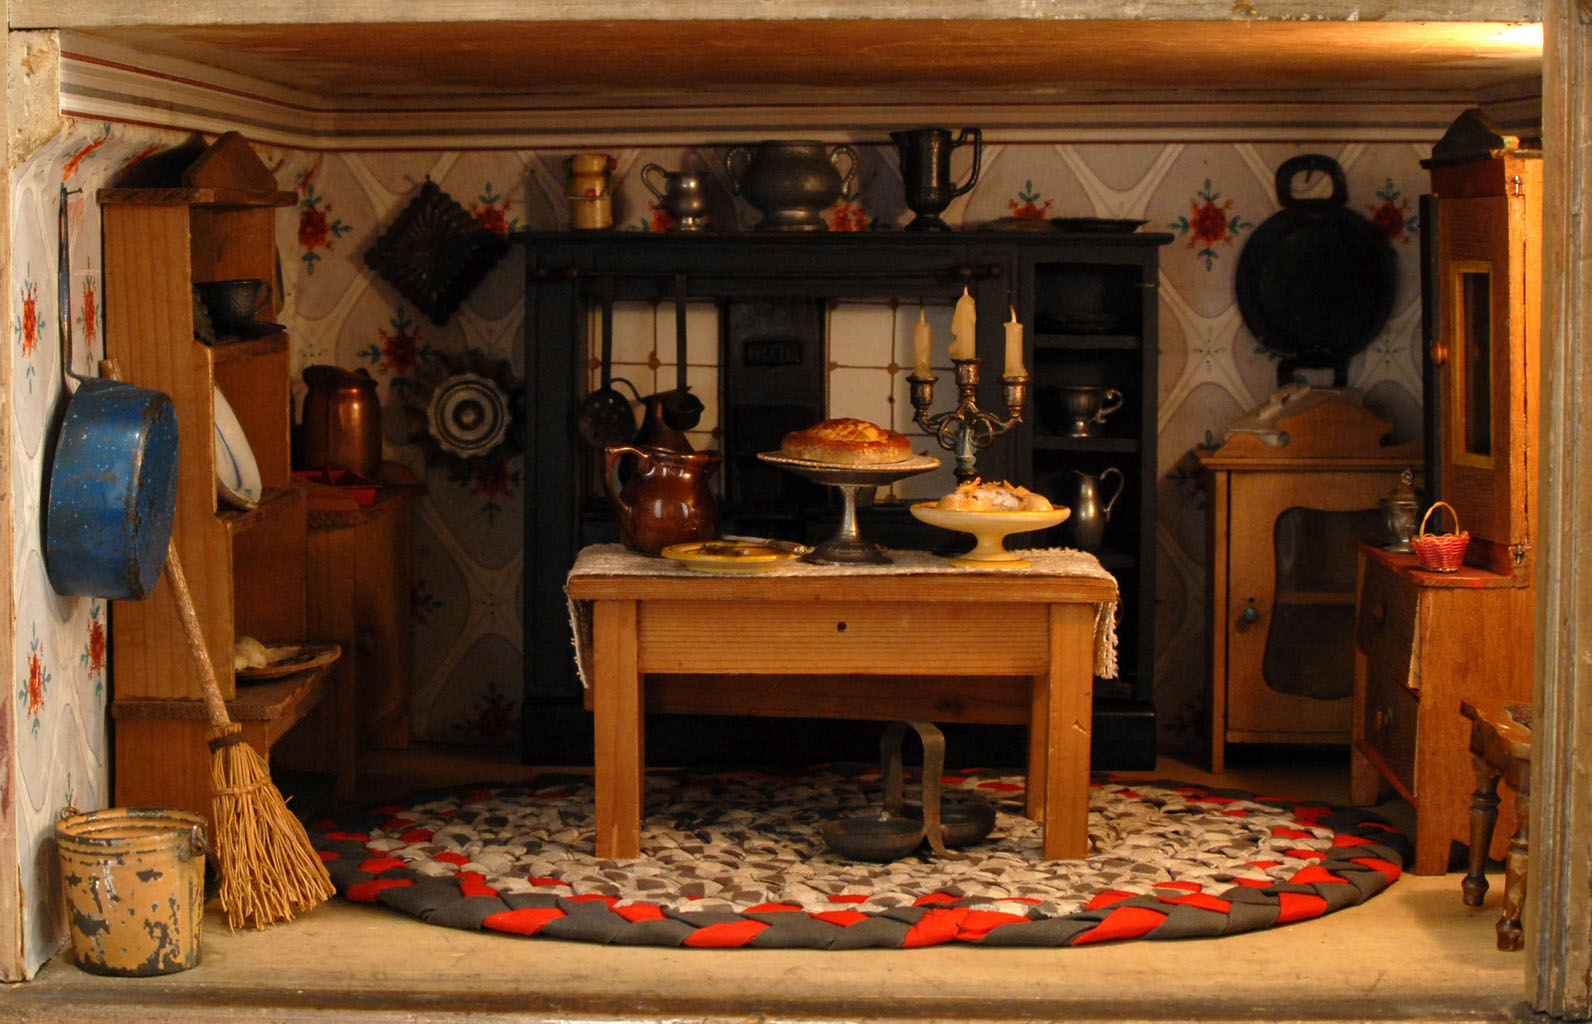 Living Little The Miniature World Of Dollhouses Hannah S Treasures